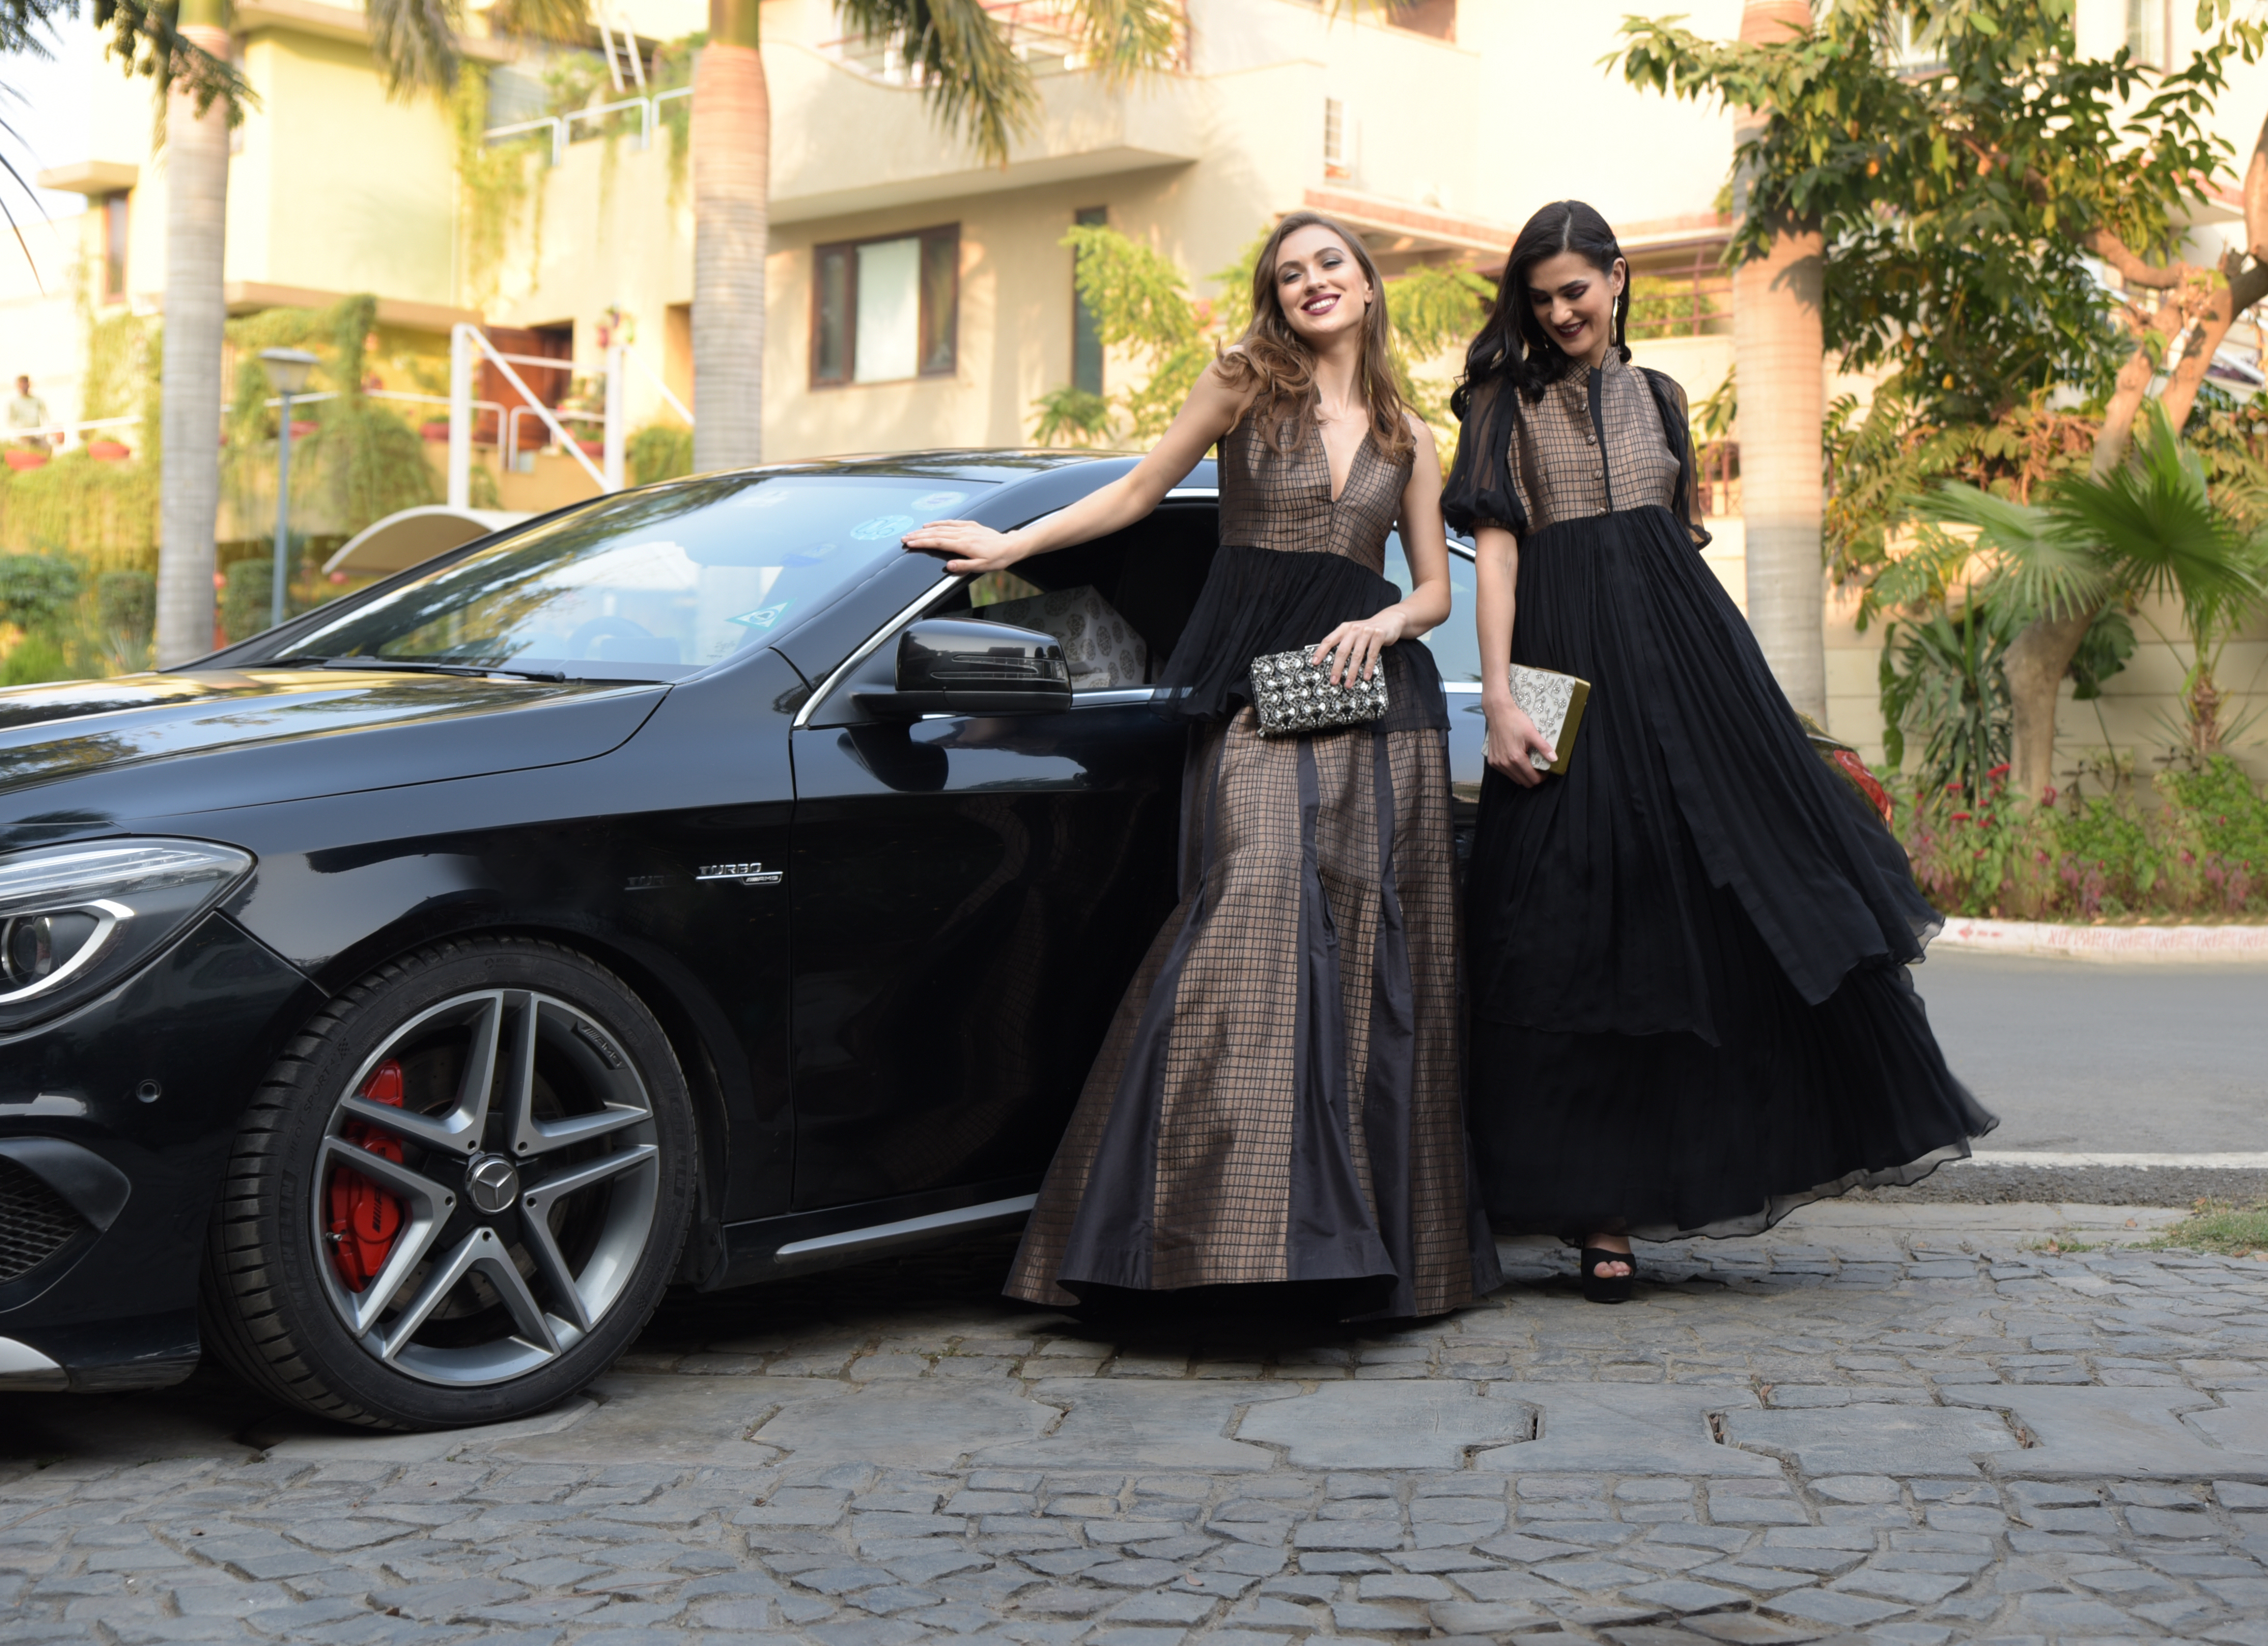 girls in black outfits pose in front of a black car